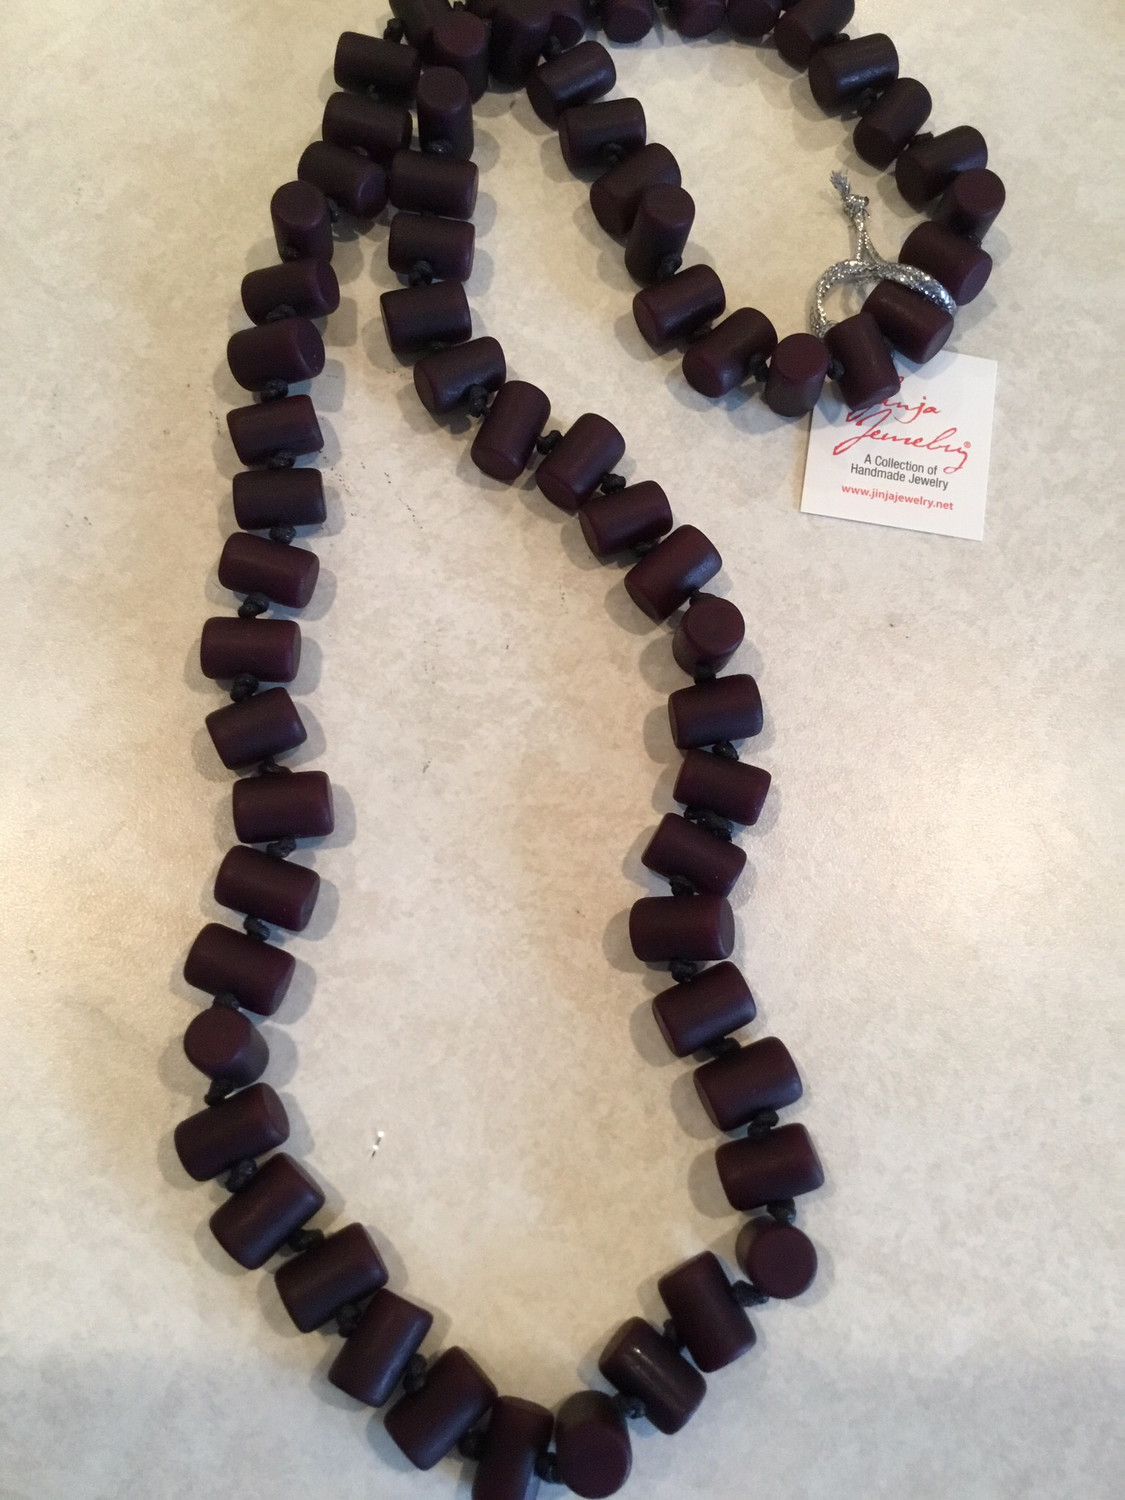 Bamboo Look Handmade Beads Knotted Necklace